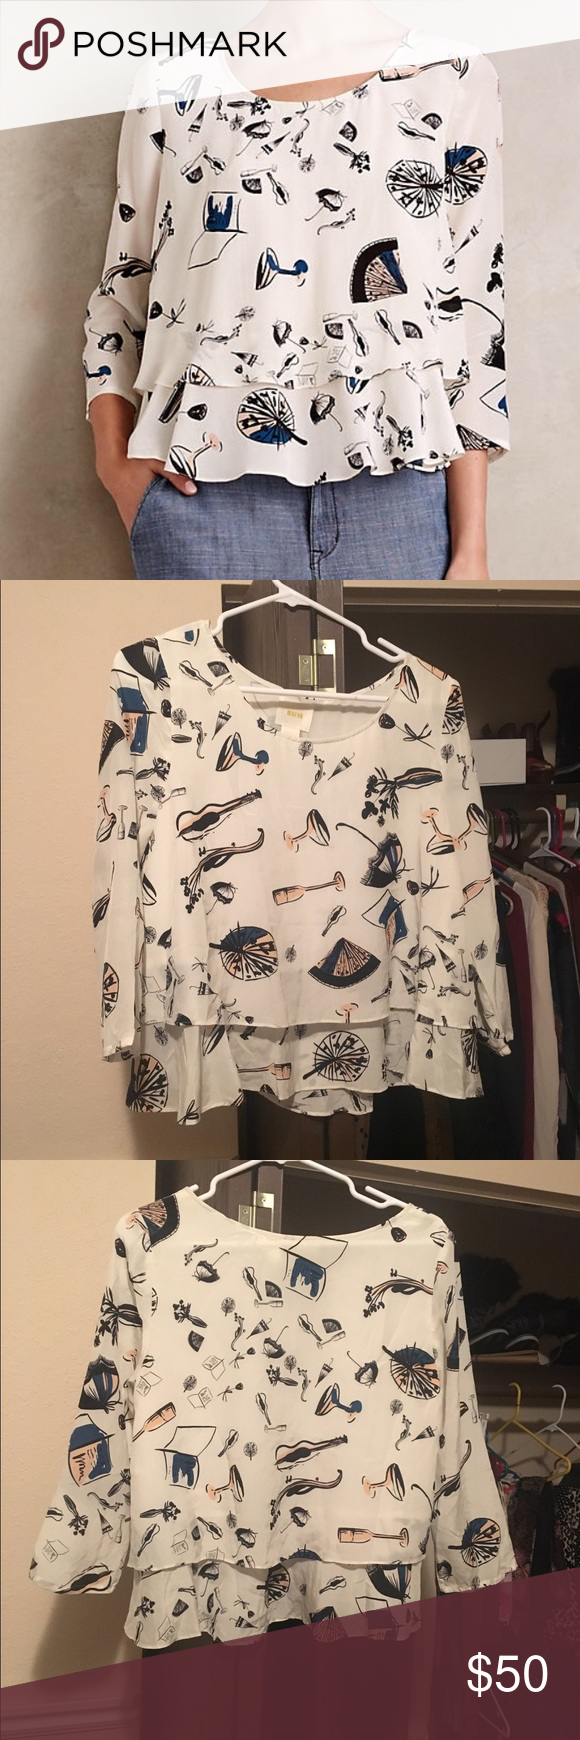 Maeve on the town swing top Maeve by anthropologie - on the town swing top - no longer available in store. Size 8 can fit a 6 also. Rare and in perfect condition. Price firm Anthropologie Tops Blouses